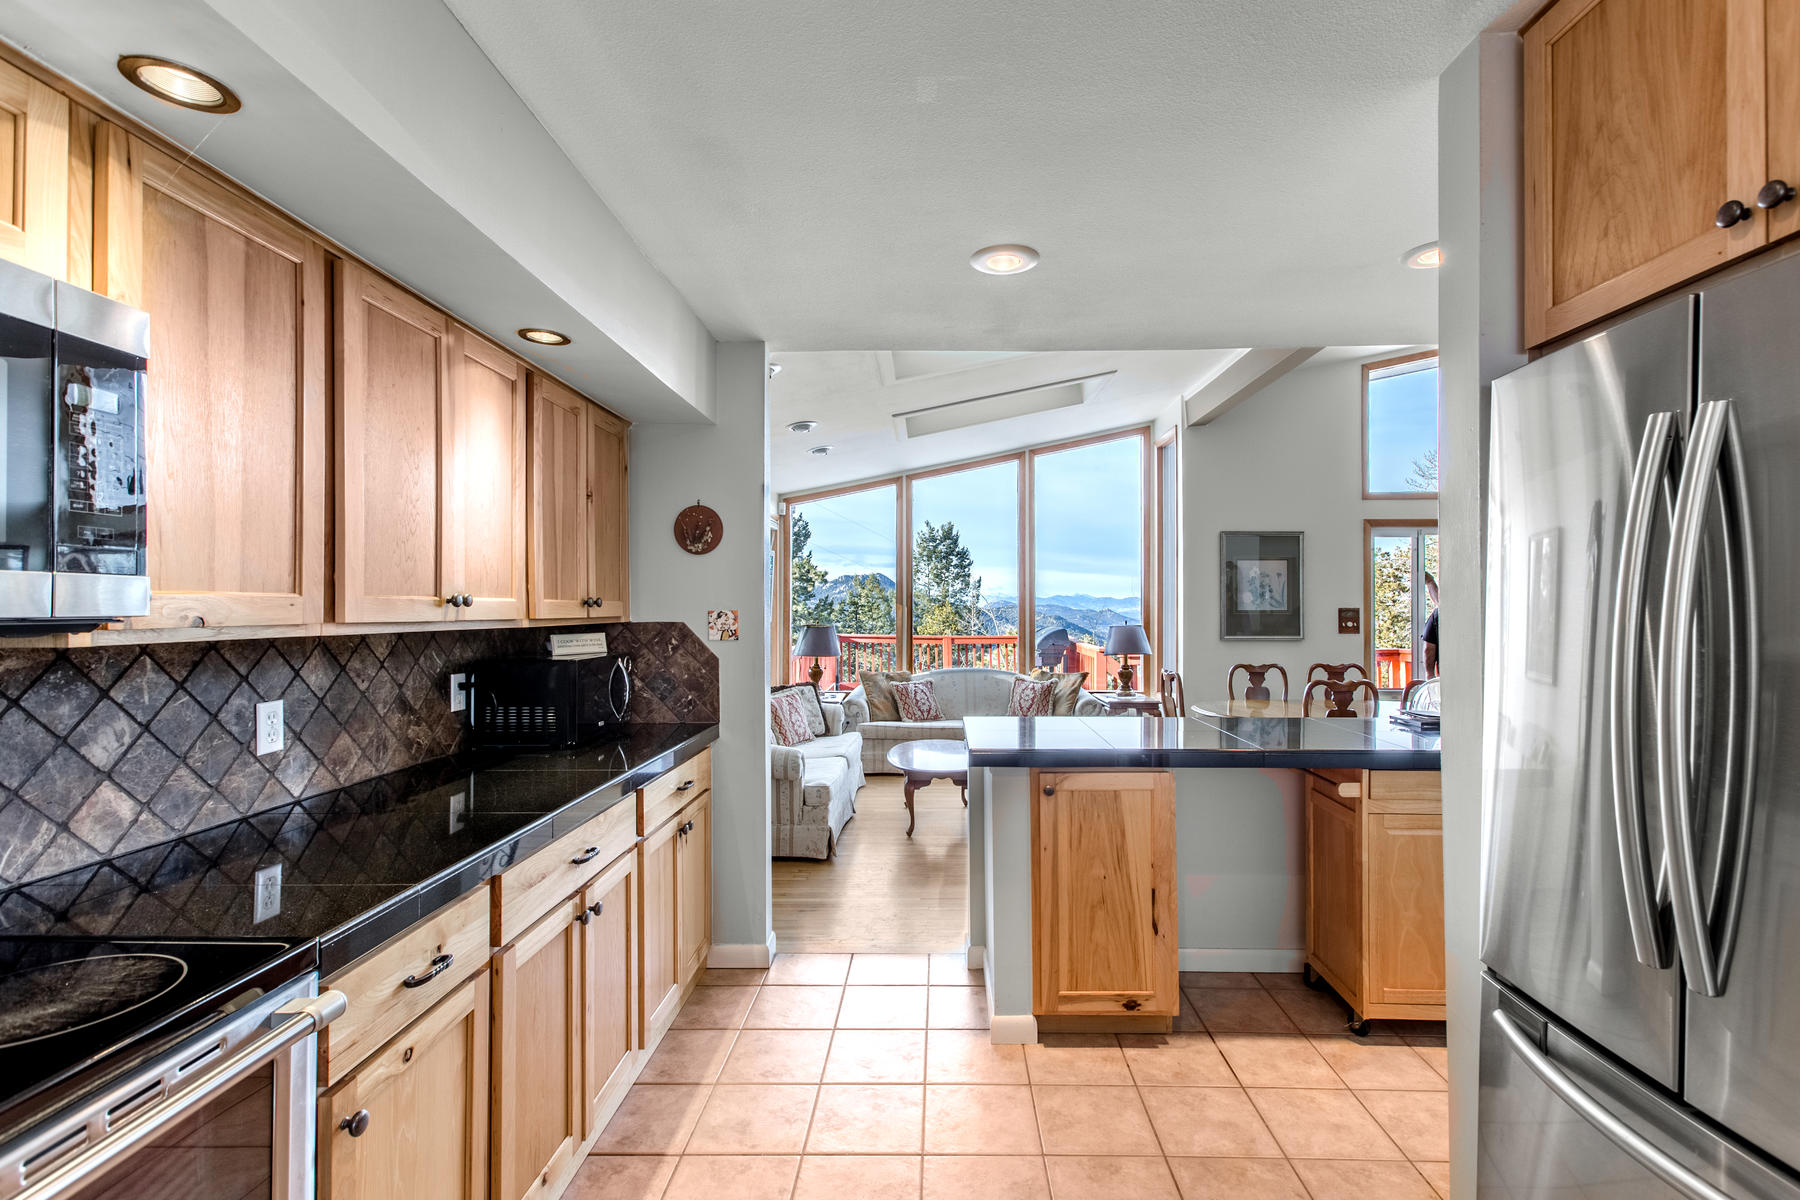 Single Family Homes for Sale at Charming Mountain Home with Long Distance City Views. 19941 Maxwell Drive Morrison, Colorado 80465 United States